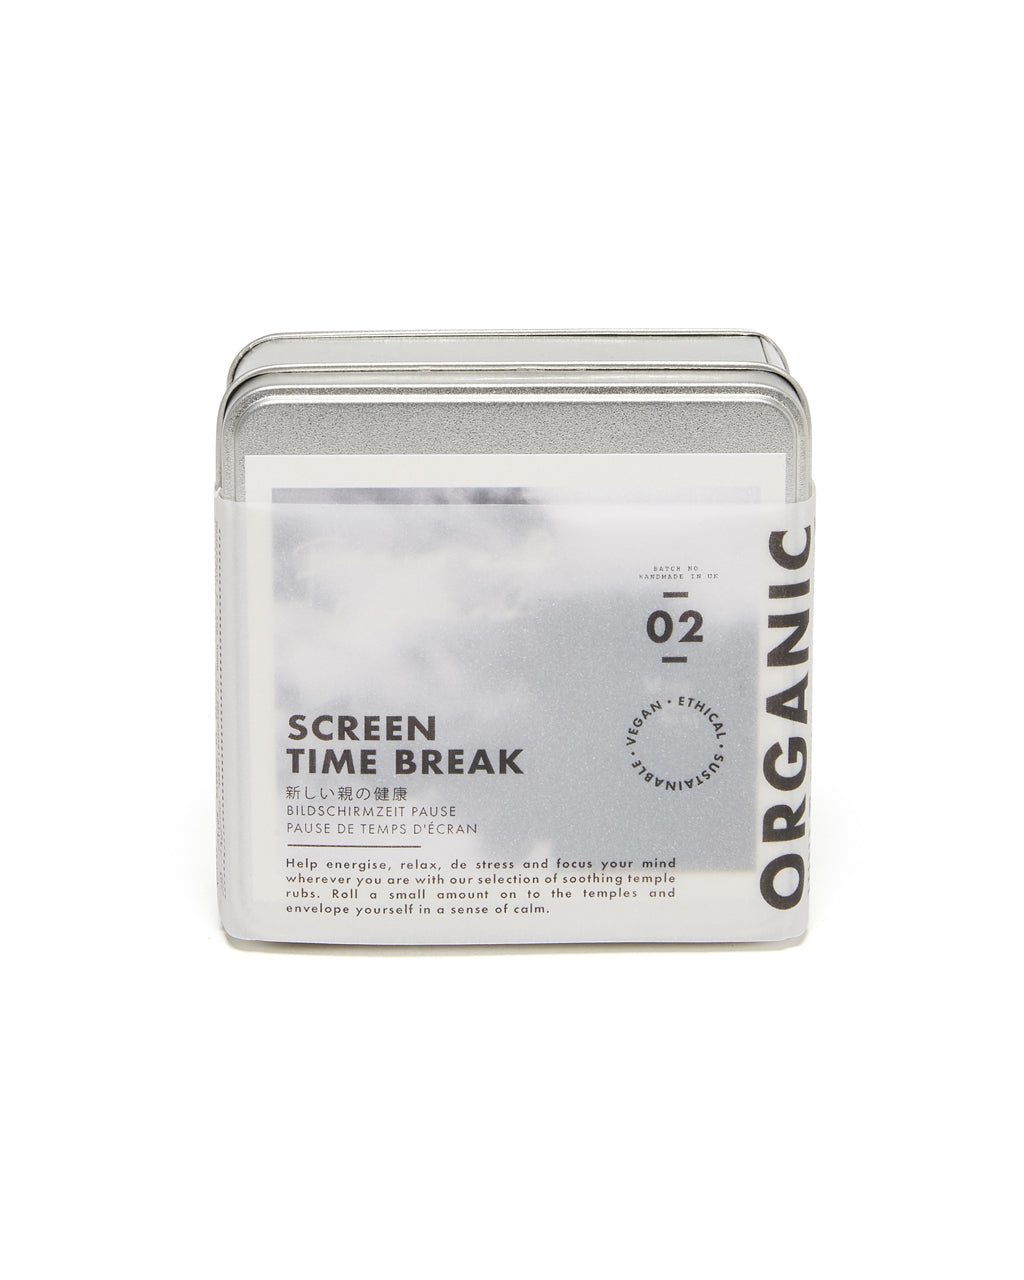 screen time break kit shown in packaging